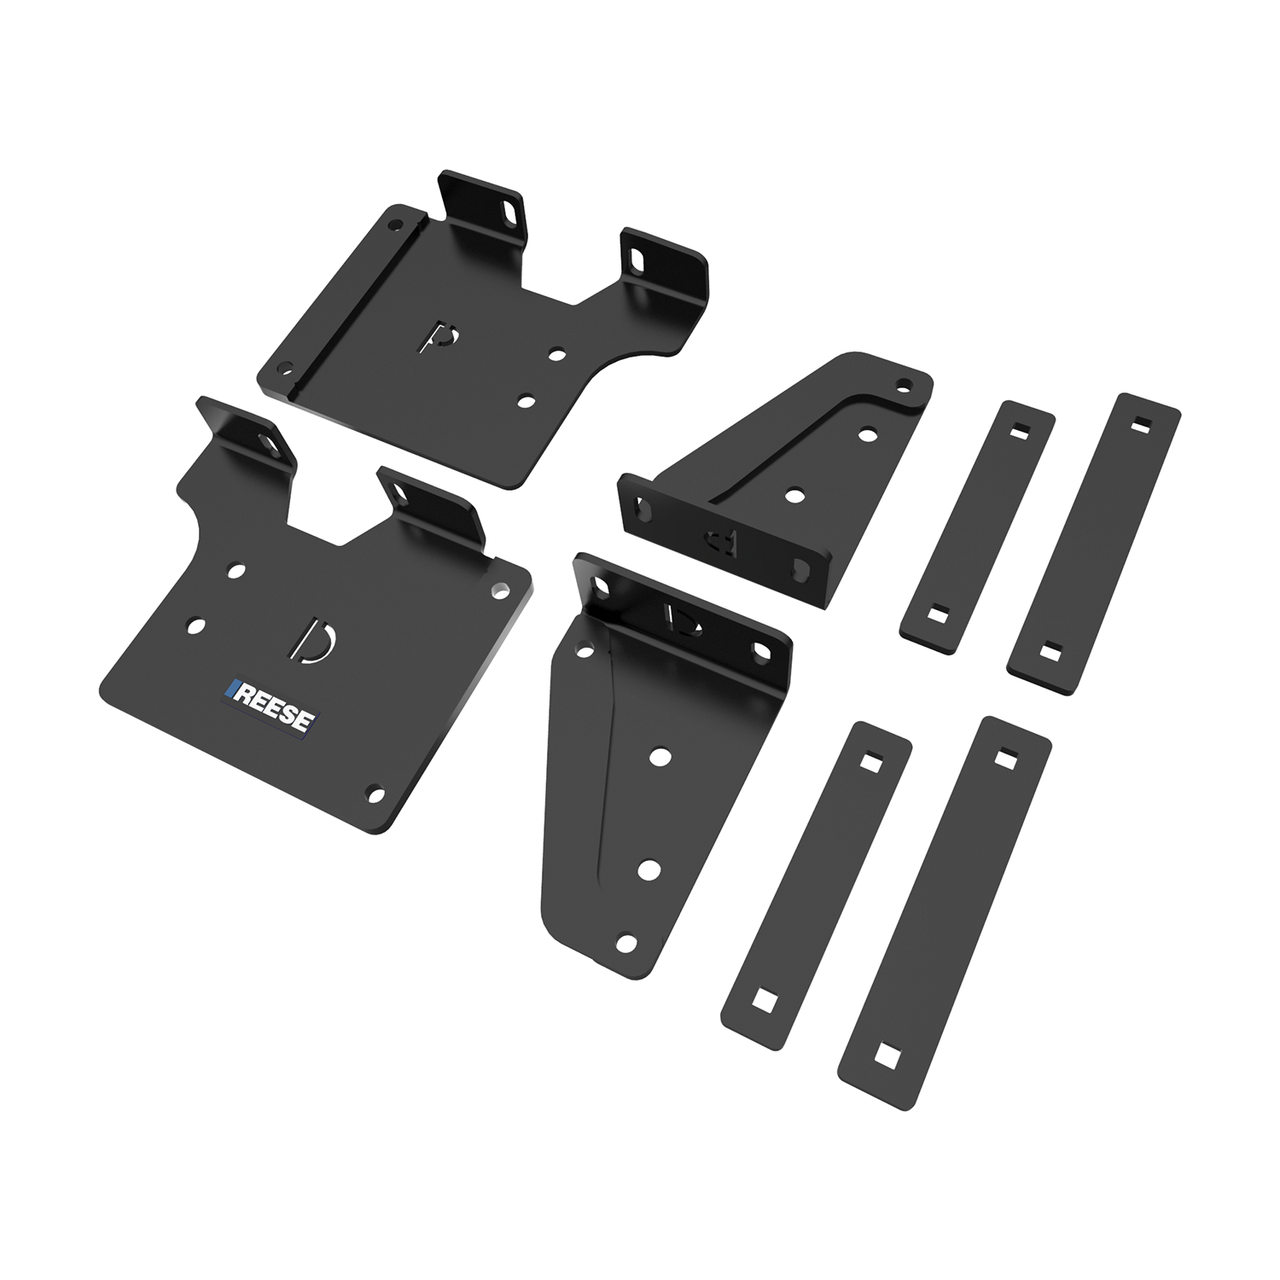 56023 --- Fifth Wheel Trailer Hitch Outboard Bracket Kit for Chevy 2500/3500 Pickups